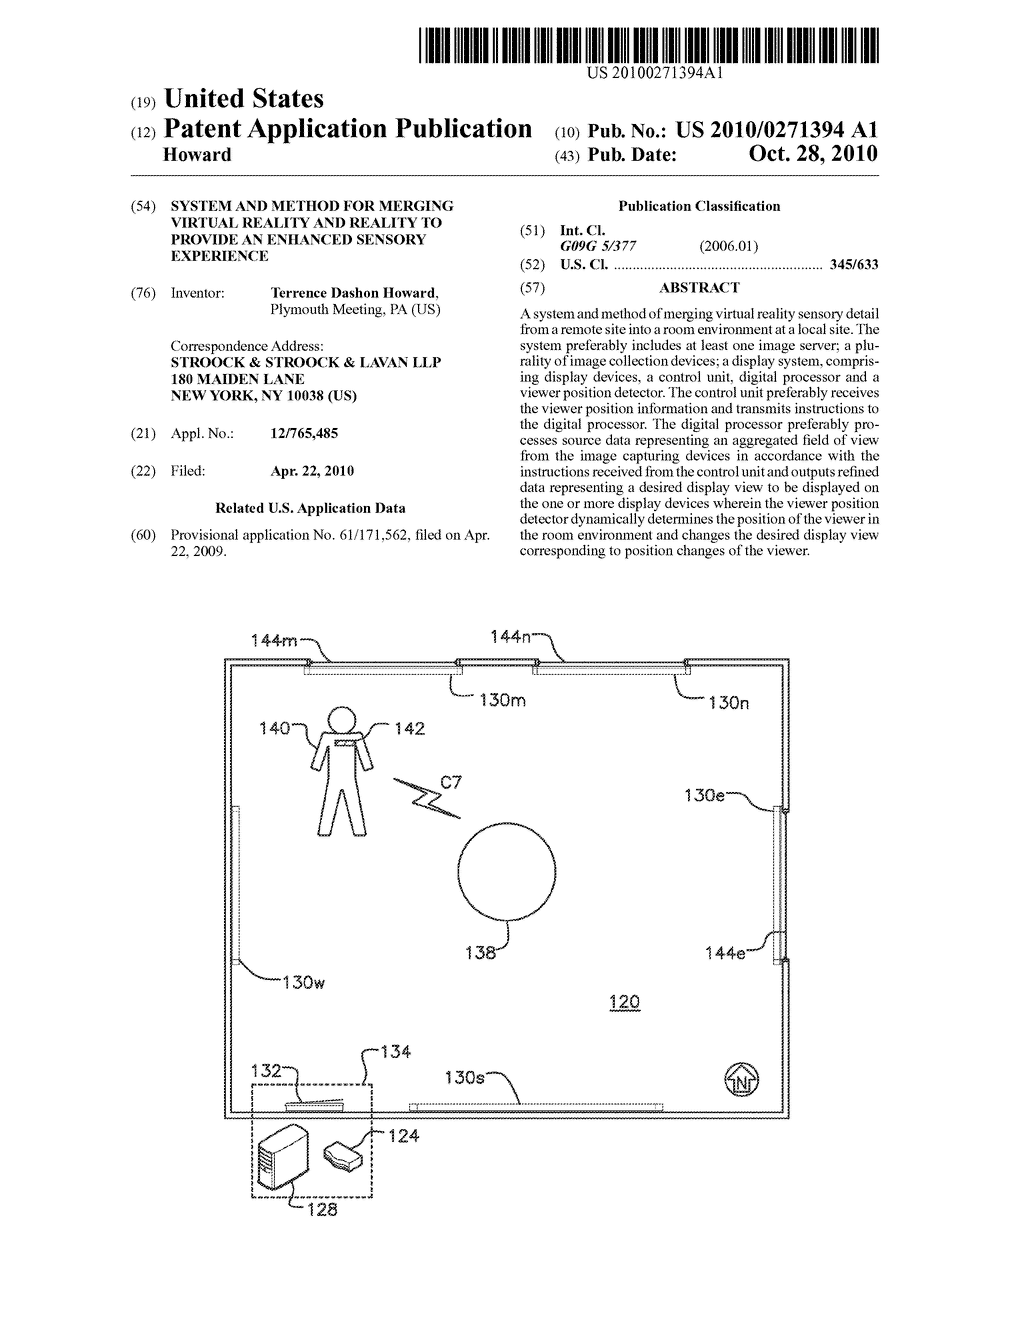 SYSTEM AND METHOD FOR MERGING VIRTUAL REALITY AND REALITY TO PROVIDE AN ENHANCED SENSORY EXPERIENCE - diagram, schematic, and image 01